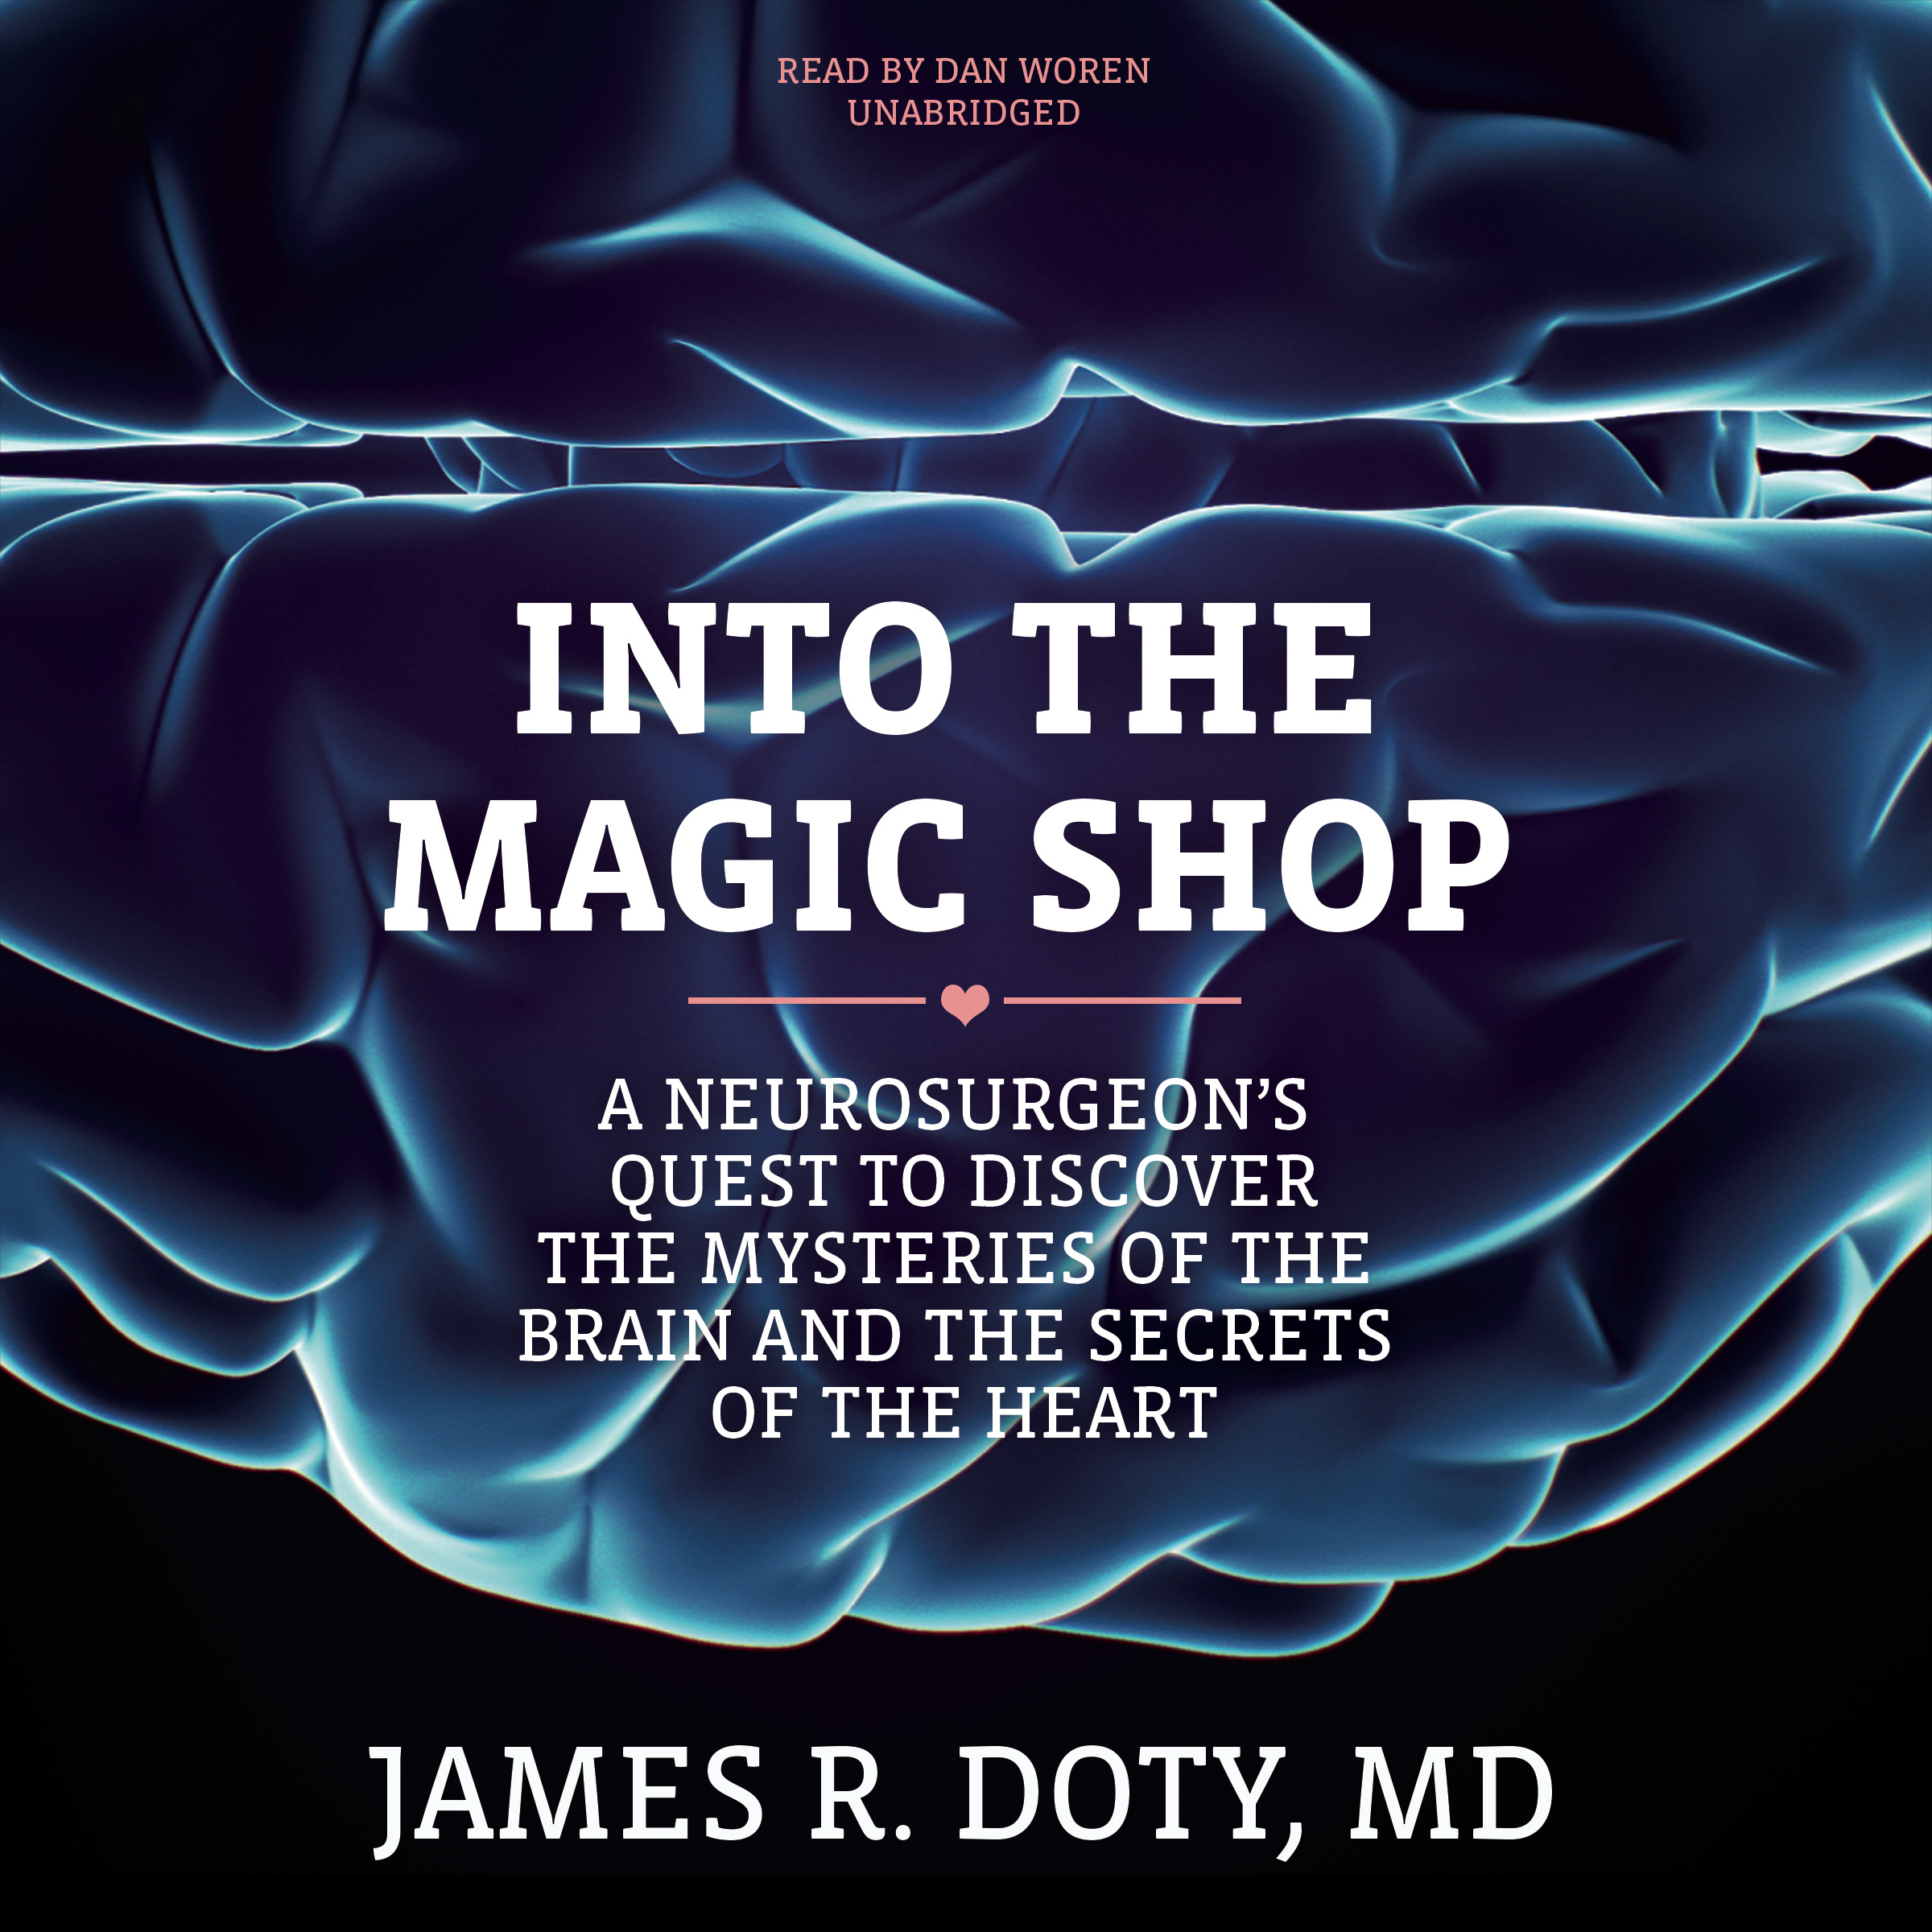 Printable Into the Magic Shop:  A Neurosurgeon's Quest to Discover the Mysteries of the Brain and the Secrets of the Heart Audiobook Cover Art